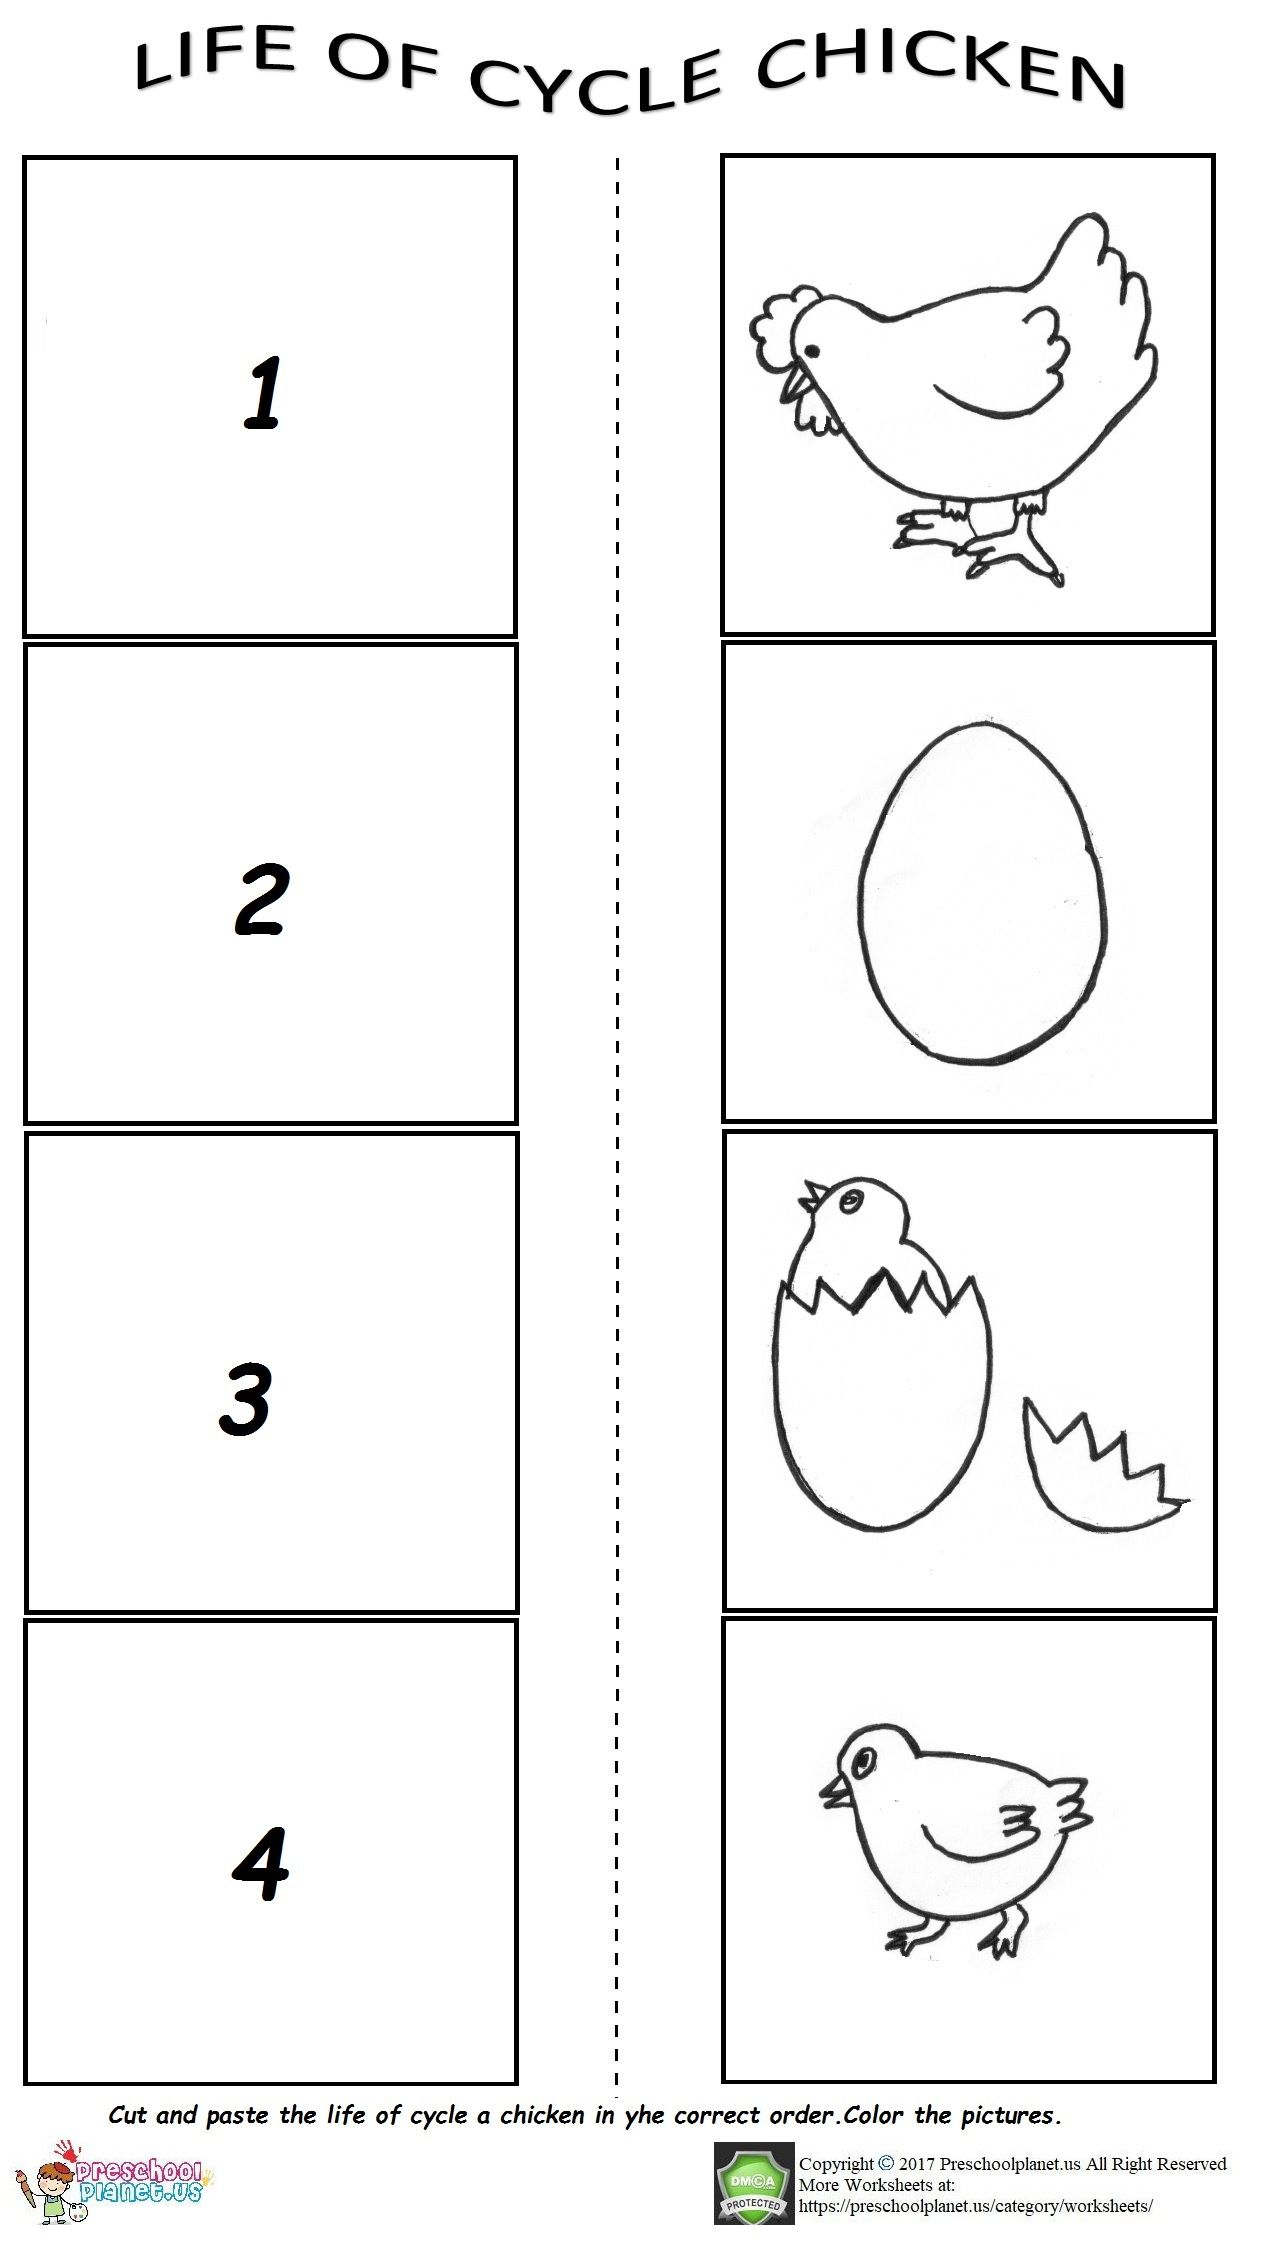 Life Of Cycle Chicken Worksheet For Preschoolers